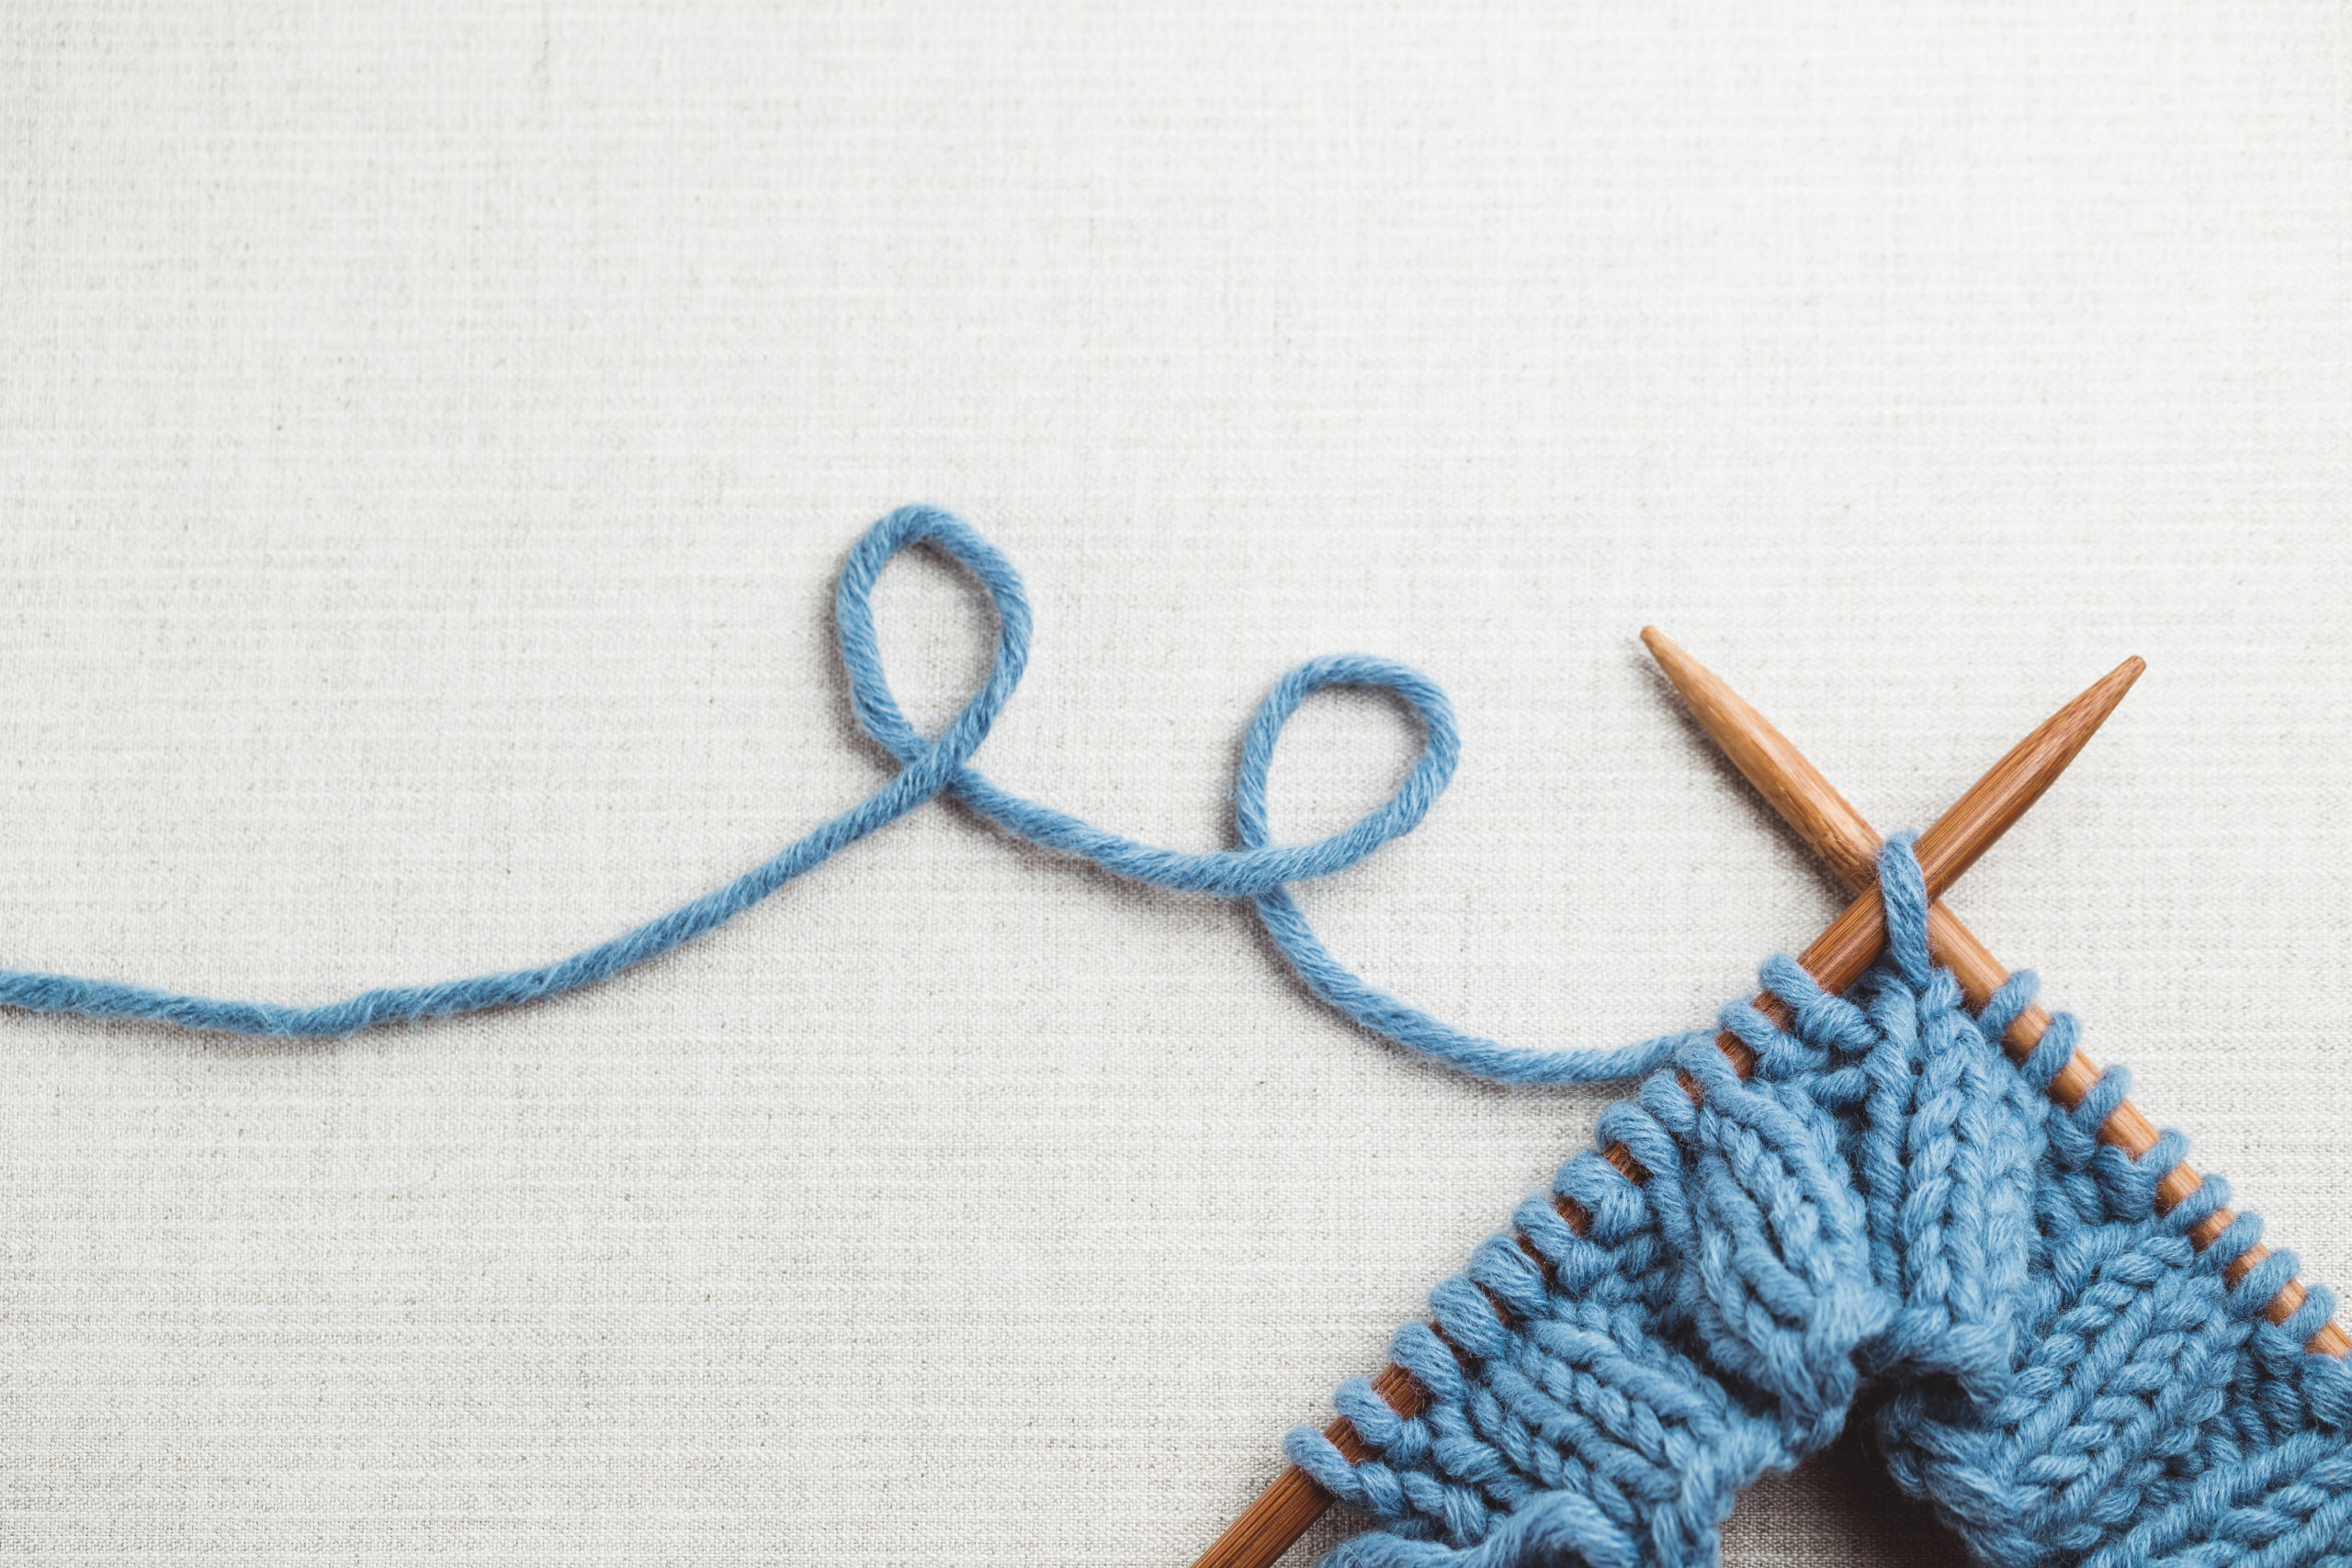 Knitting Becomes New Recovery Tool